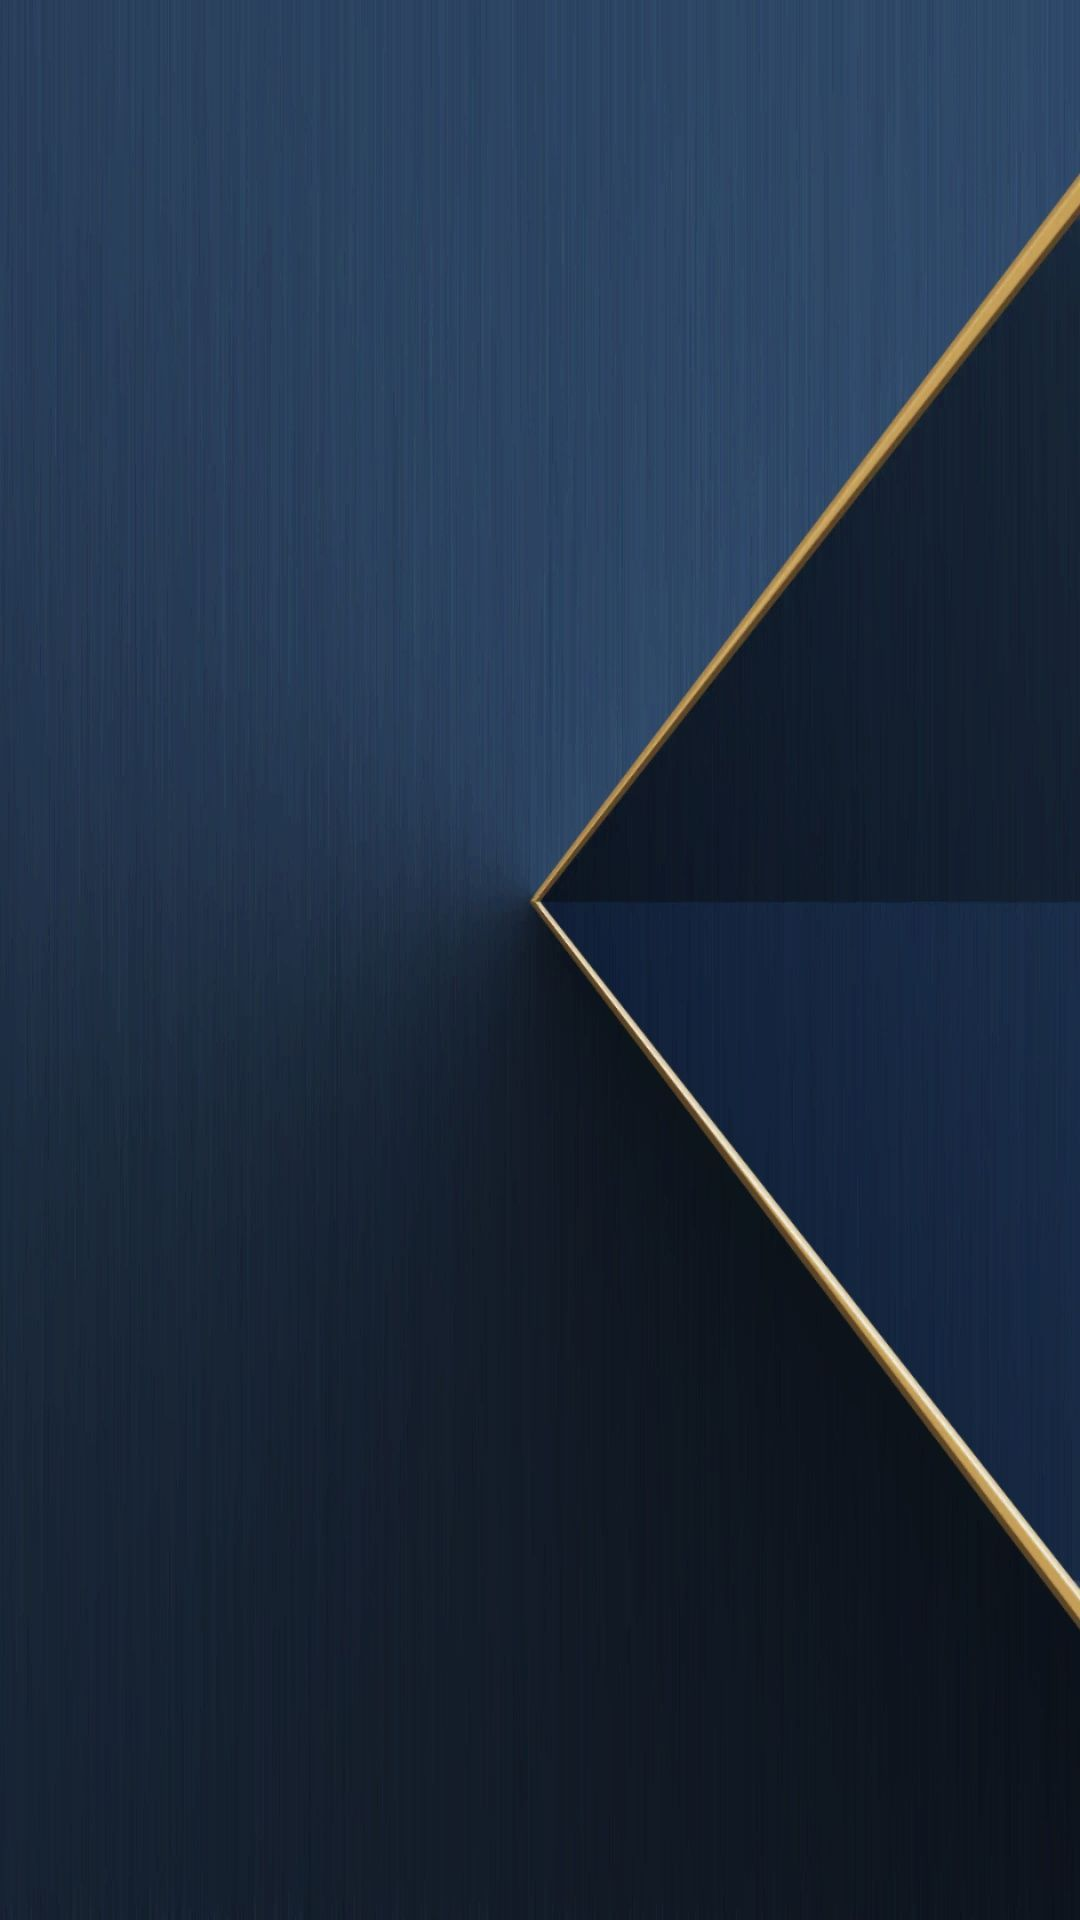 Abstract Grey And Gold Wallpaper Android Blue And Gold Wallpaper Abstract Iphone Wallpaper Gold Wallpaper